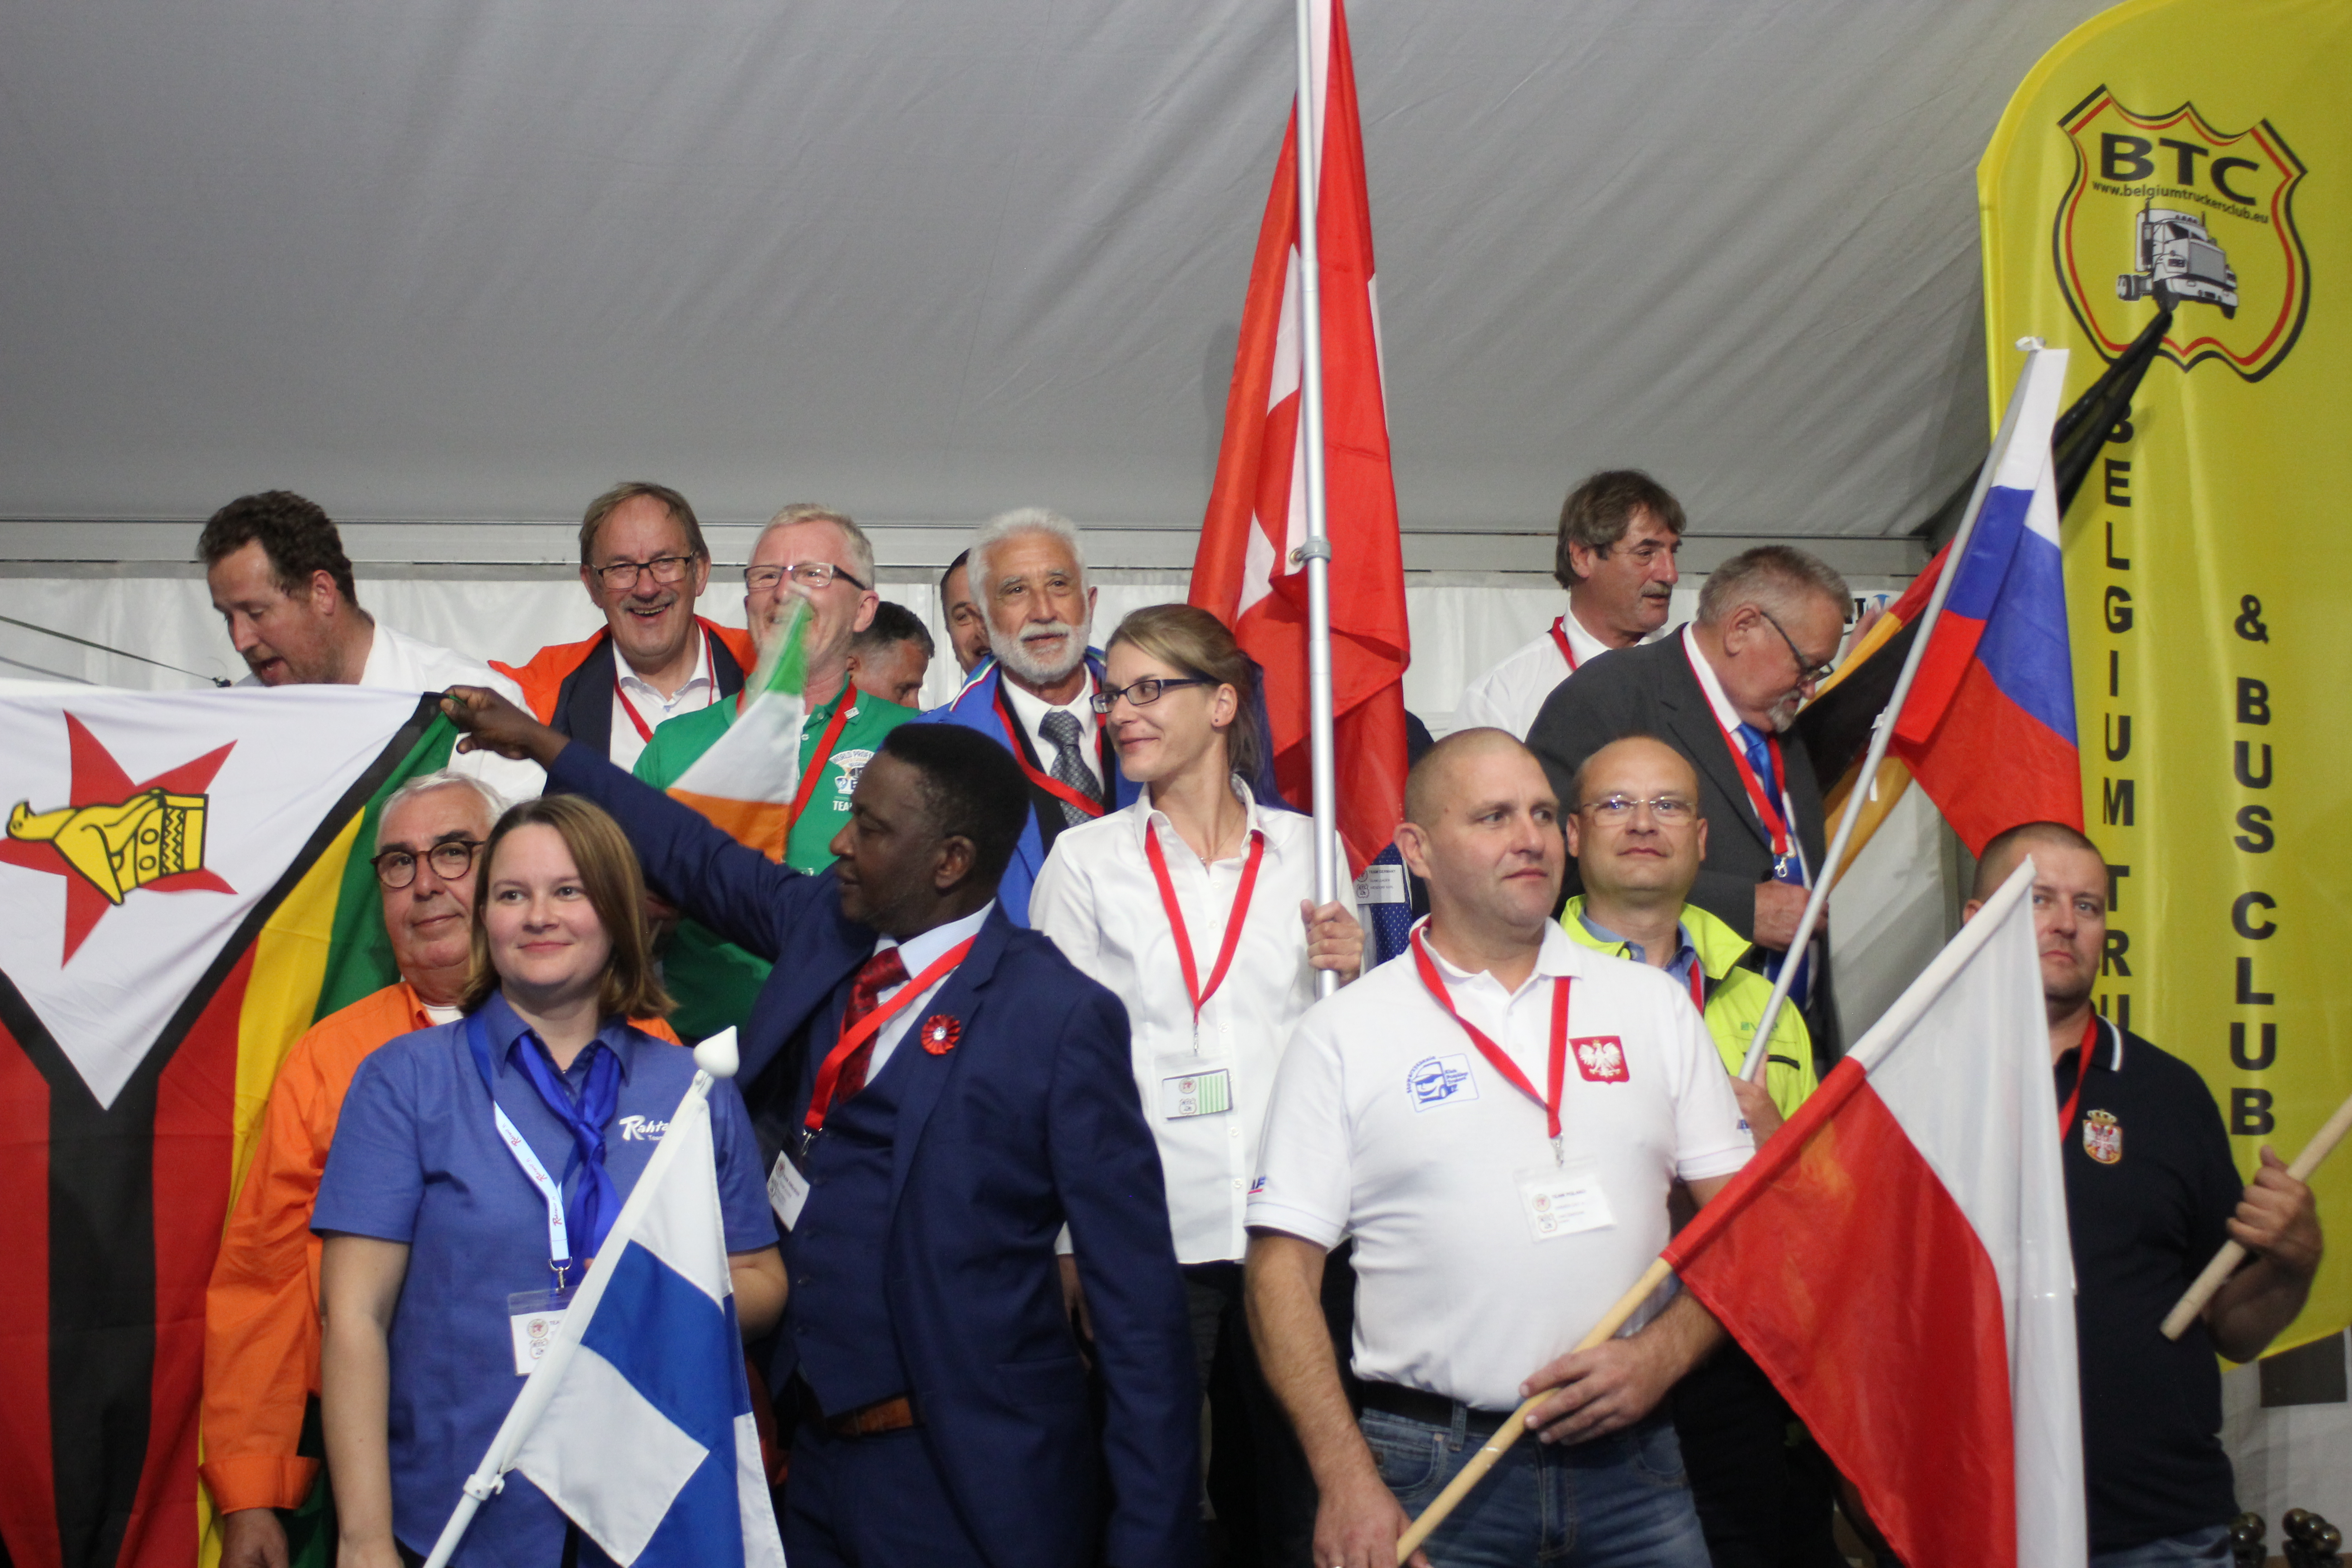 Awards Ceramony for World Professional Driver Championships